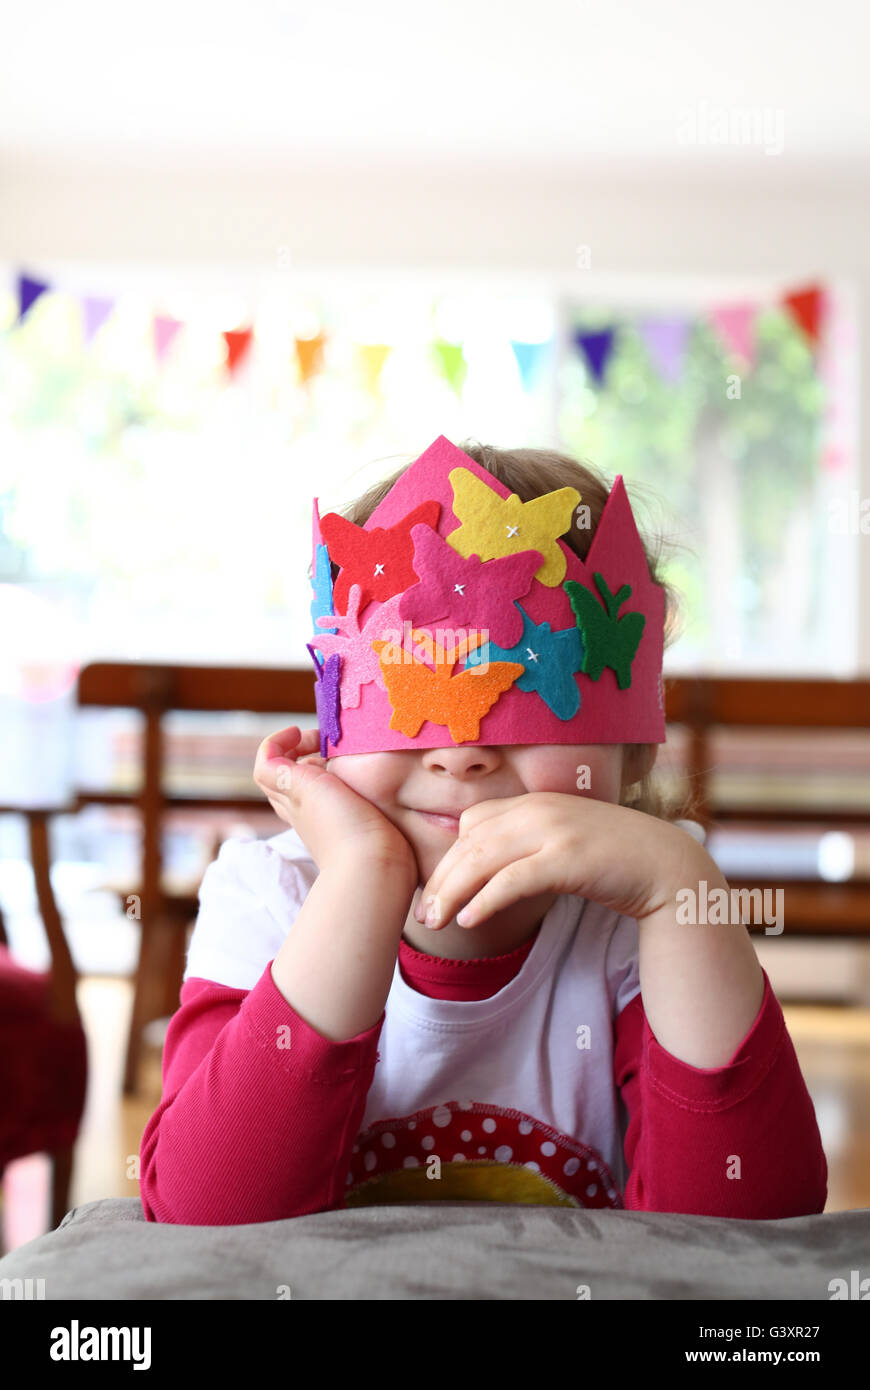 Young girl in a party hat covering her eyes - Stock Image